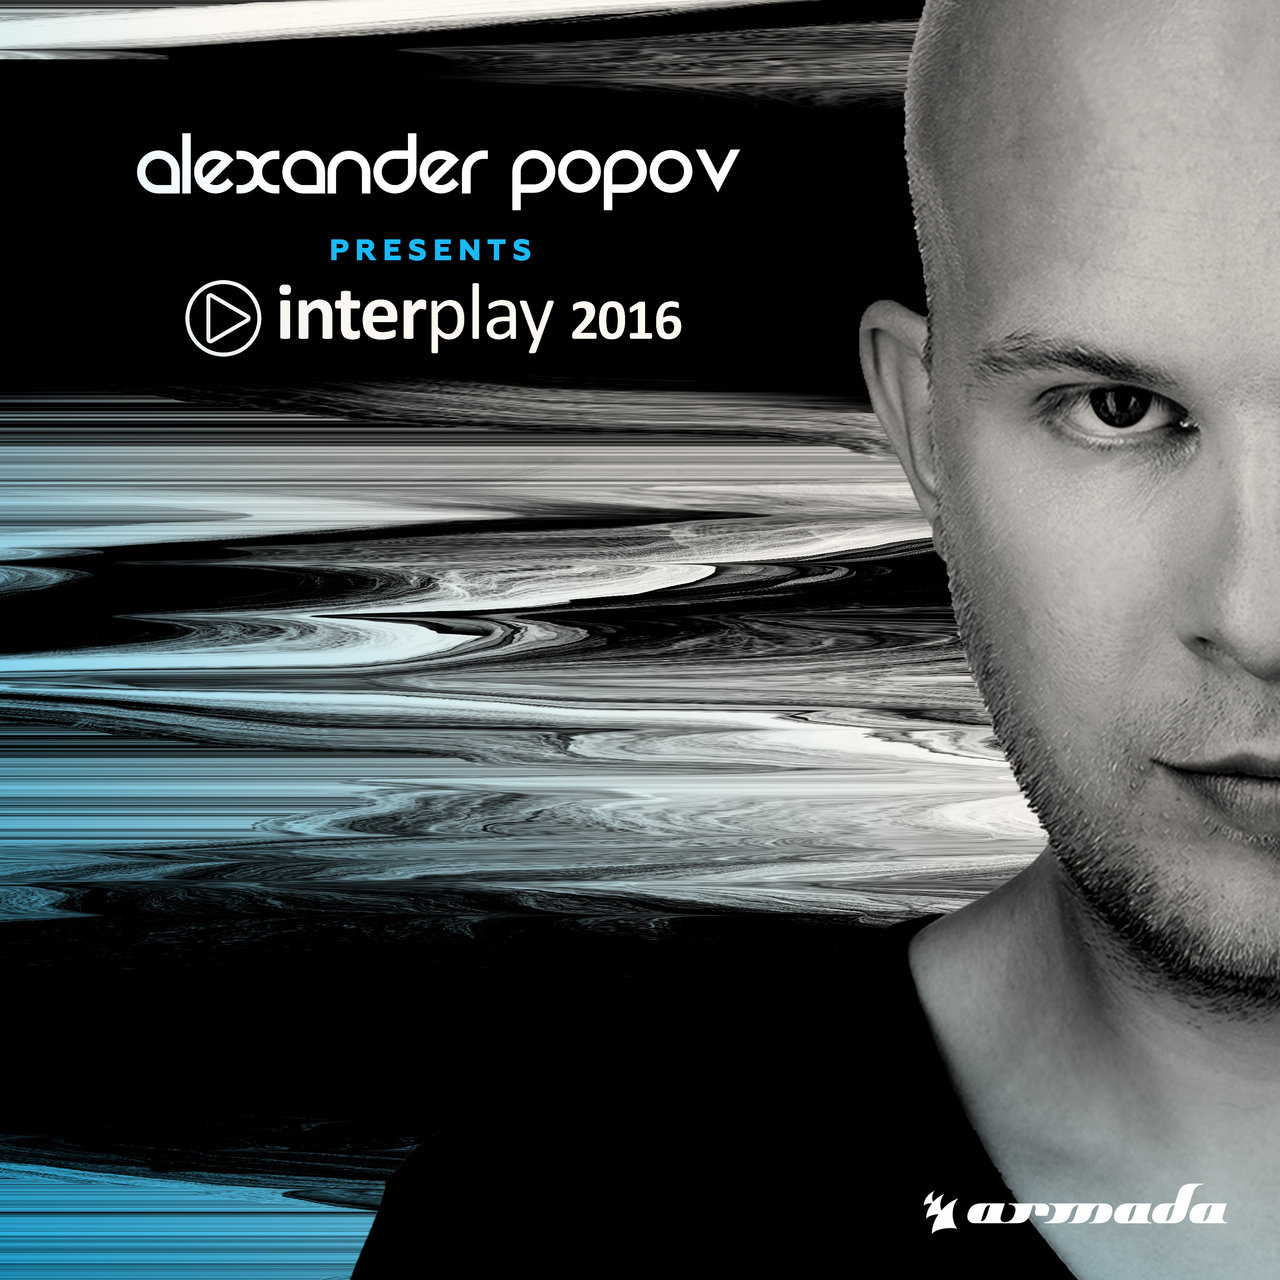 Interplay 2016